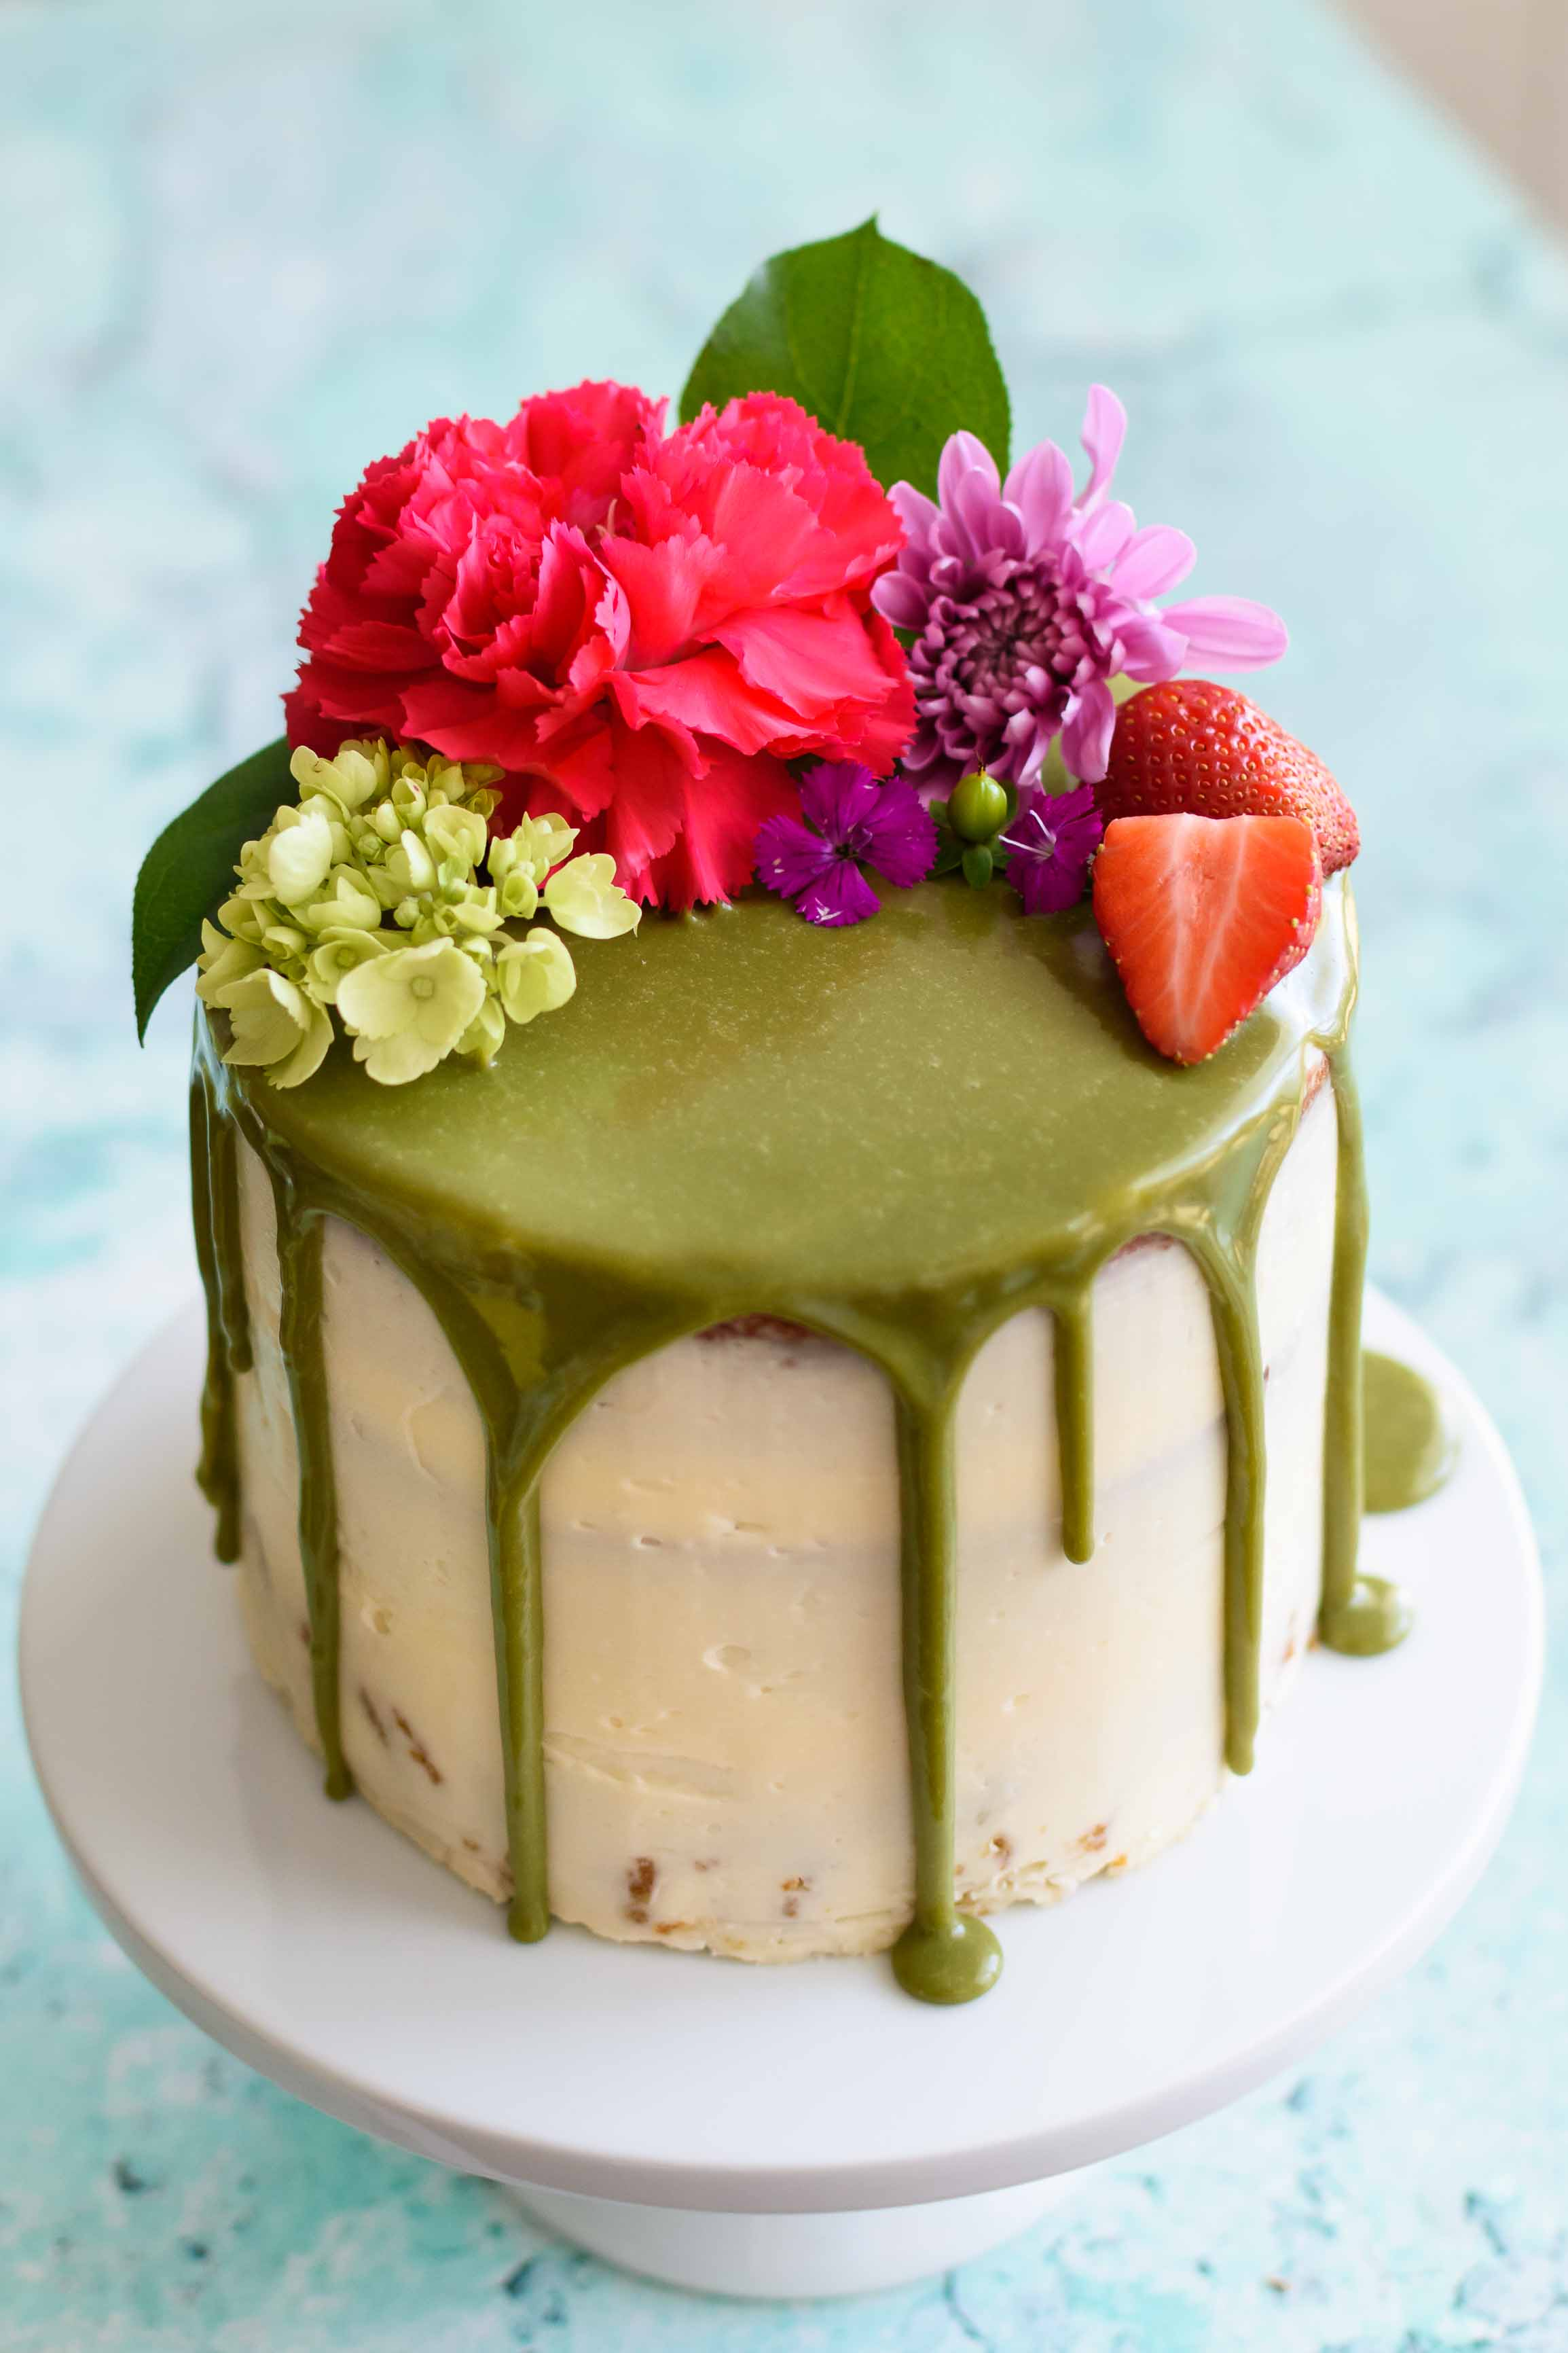 Stupendous Matcha Cake With Buttercream Frosting And White Chocolate Matcha Birthday Cards Printable Benkemecafe Filternl